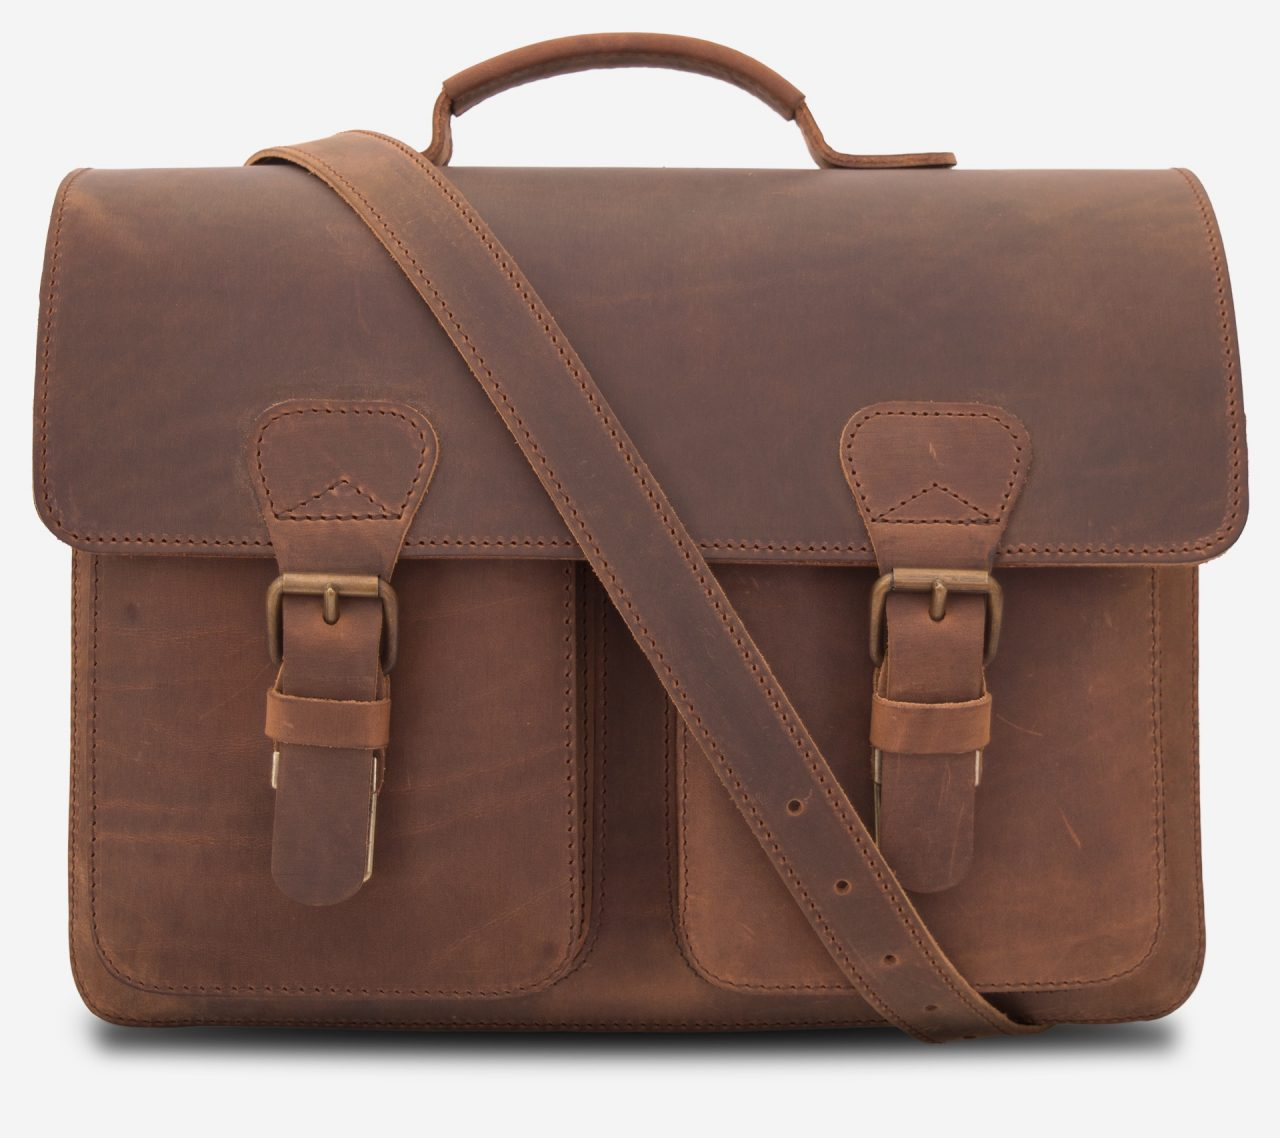 Front view of the 3 compartments Professor brown leather satchel with a leather shoulder strap.